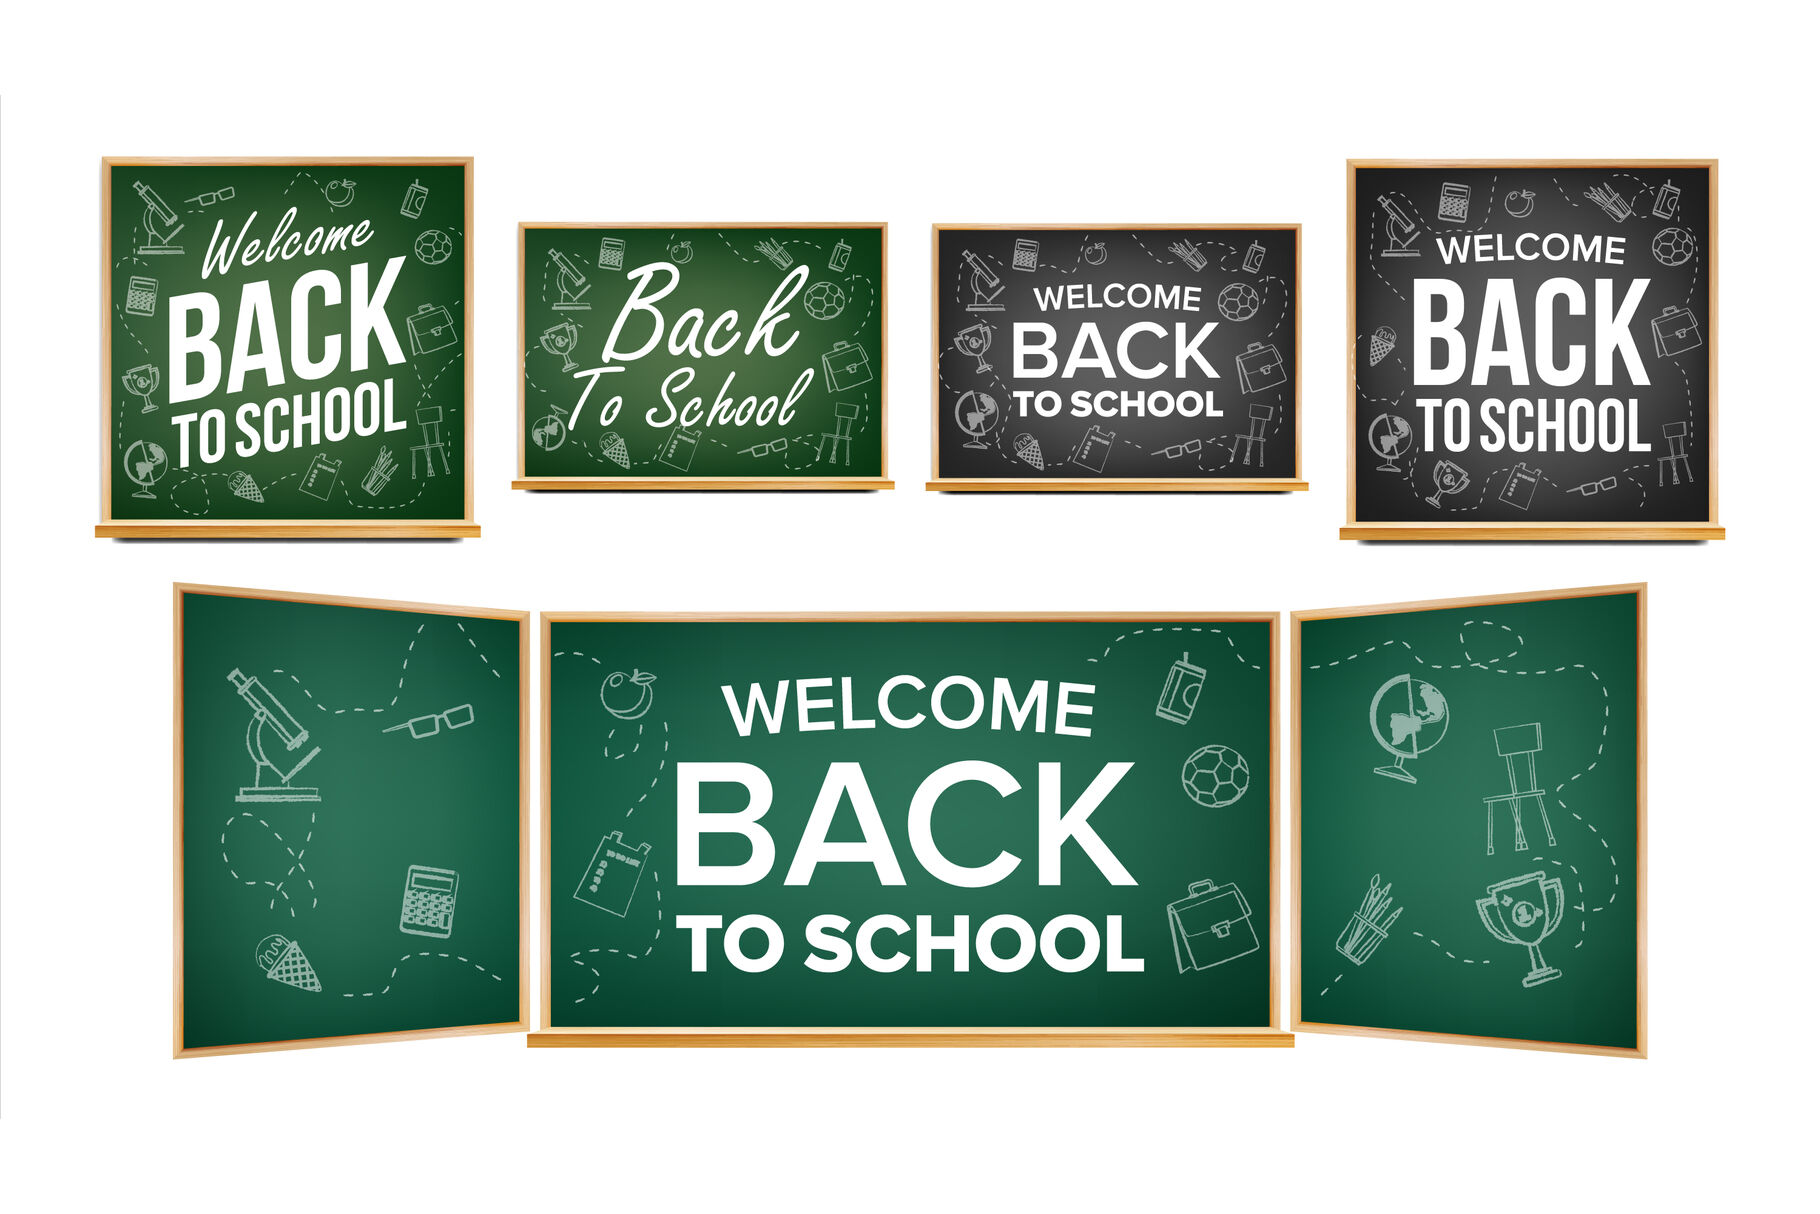 Back To School Banner Design Vector Classroom Chalkboard Blackboard Doodle Icons Sale Background Welcome 1 September Education Related Realistic Illustration By Pikepicture Thehungryjpeg Com